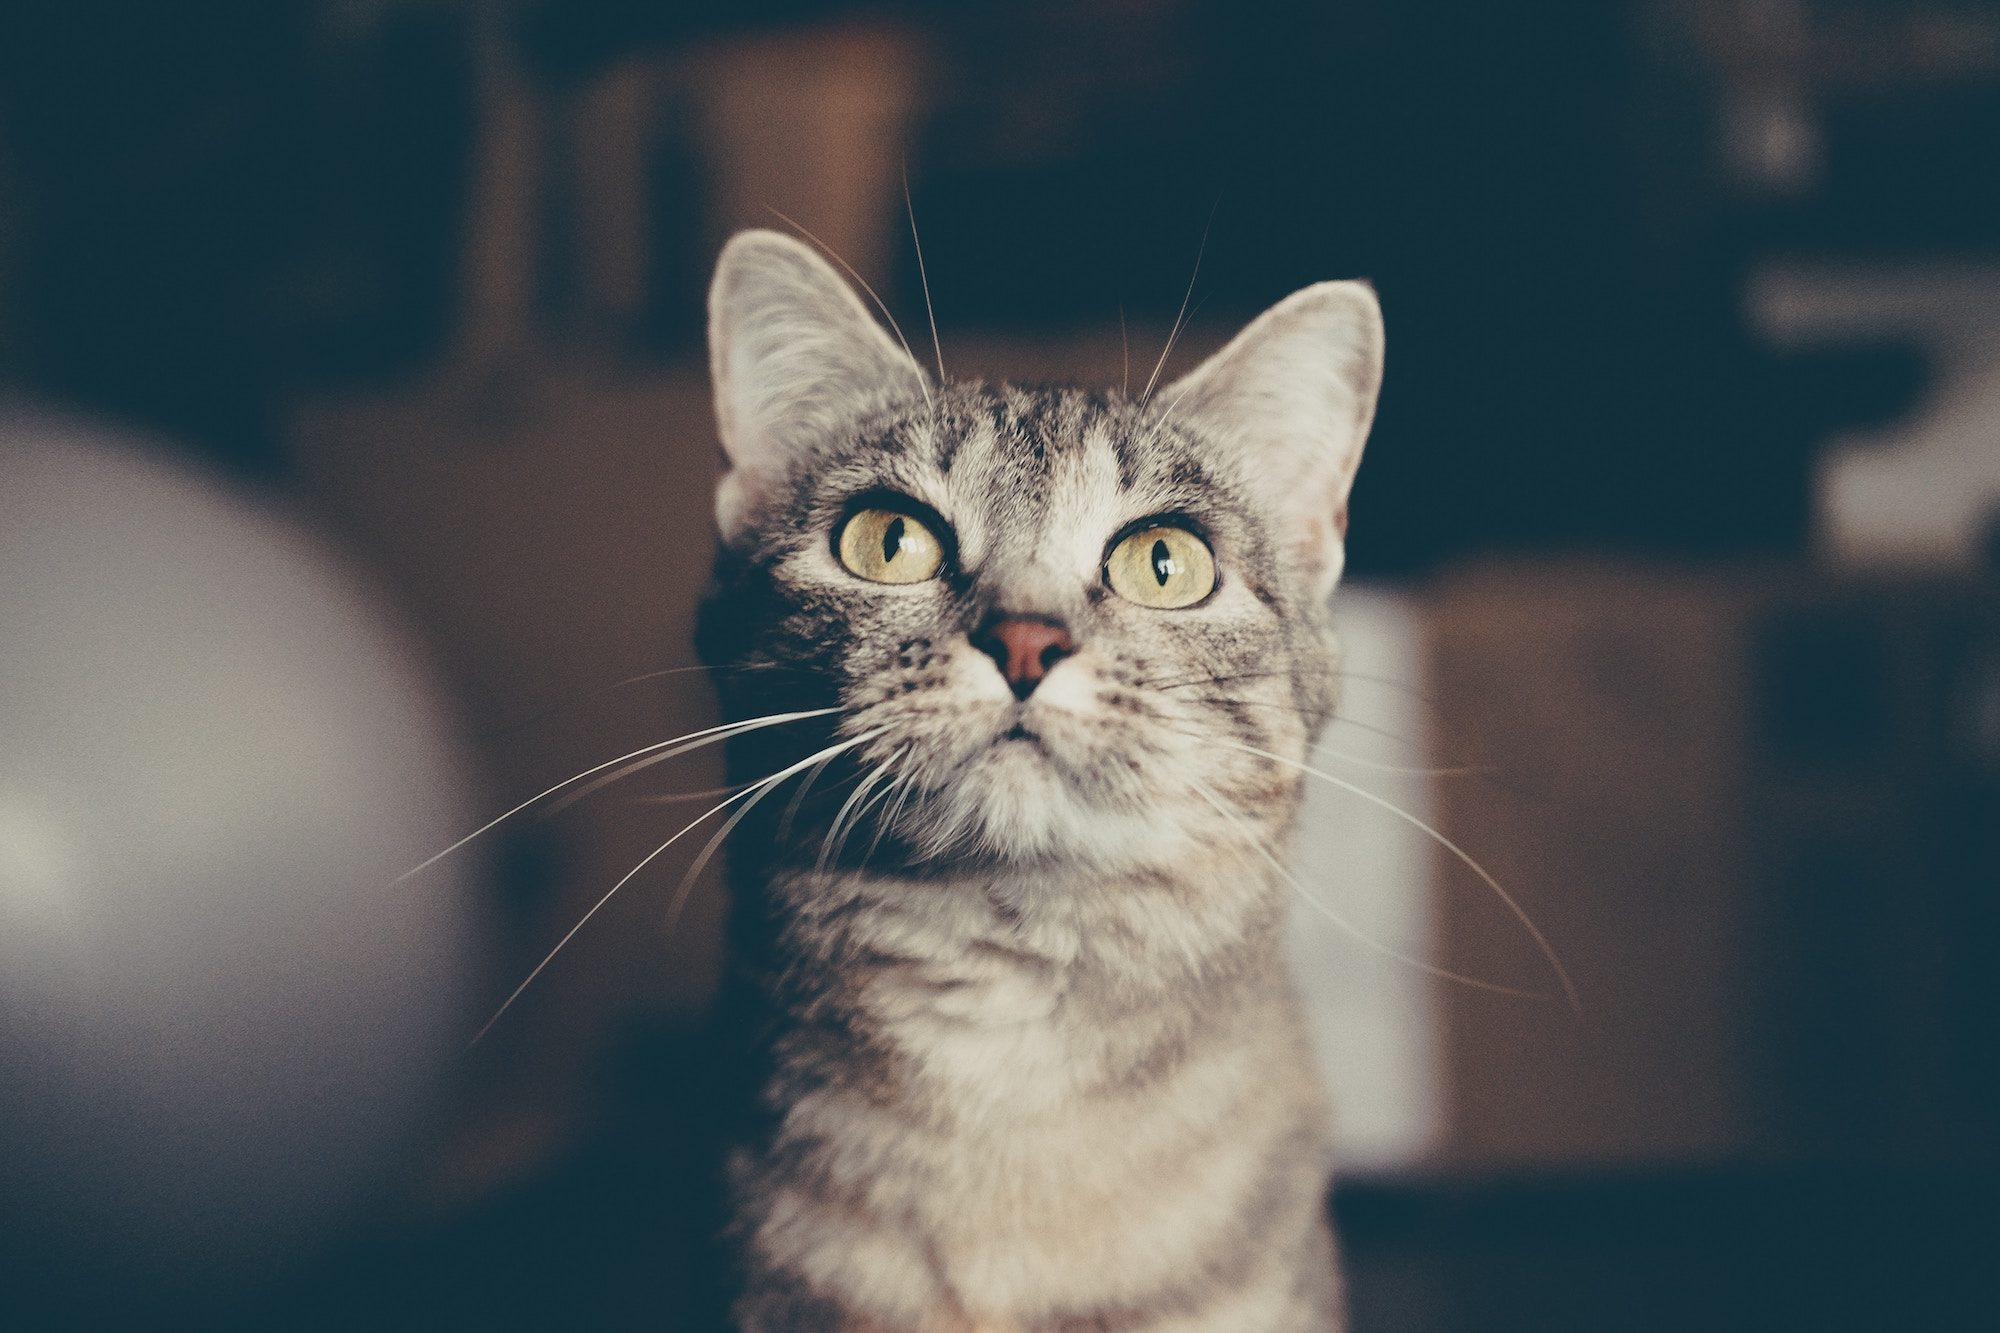 A cute gray tiger kitty with pale green eyes looking upwards.